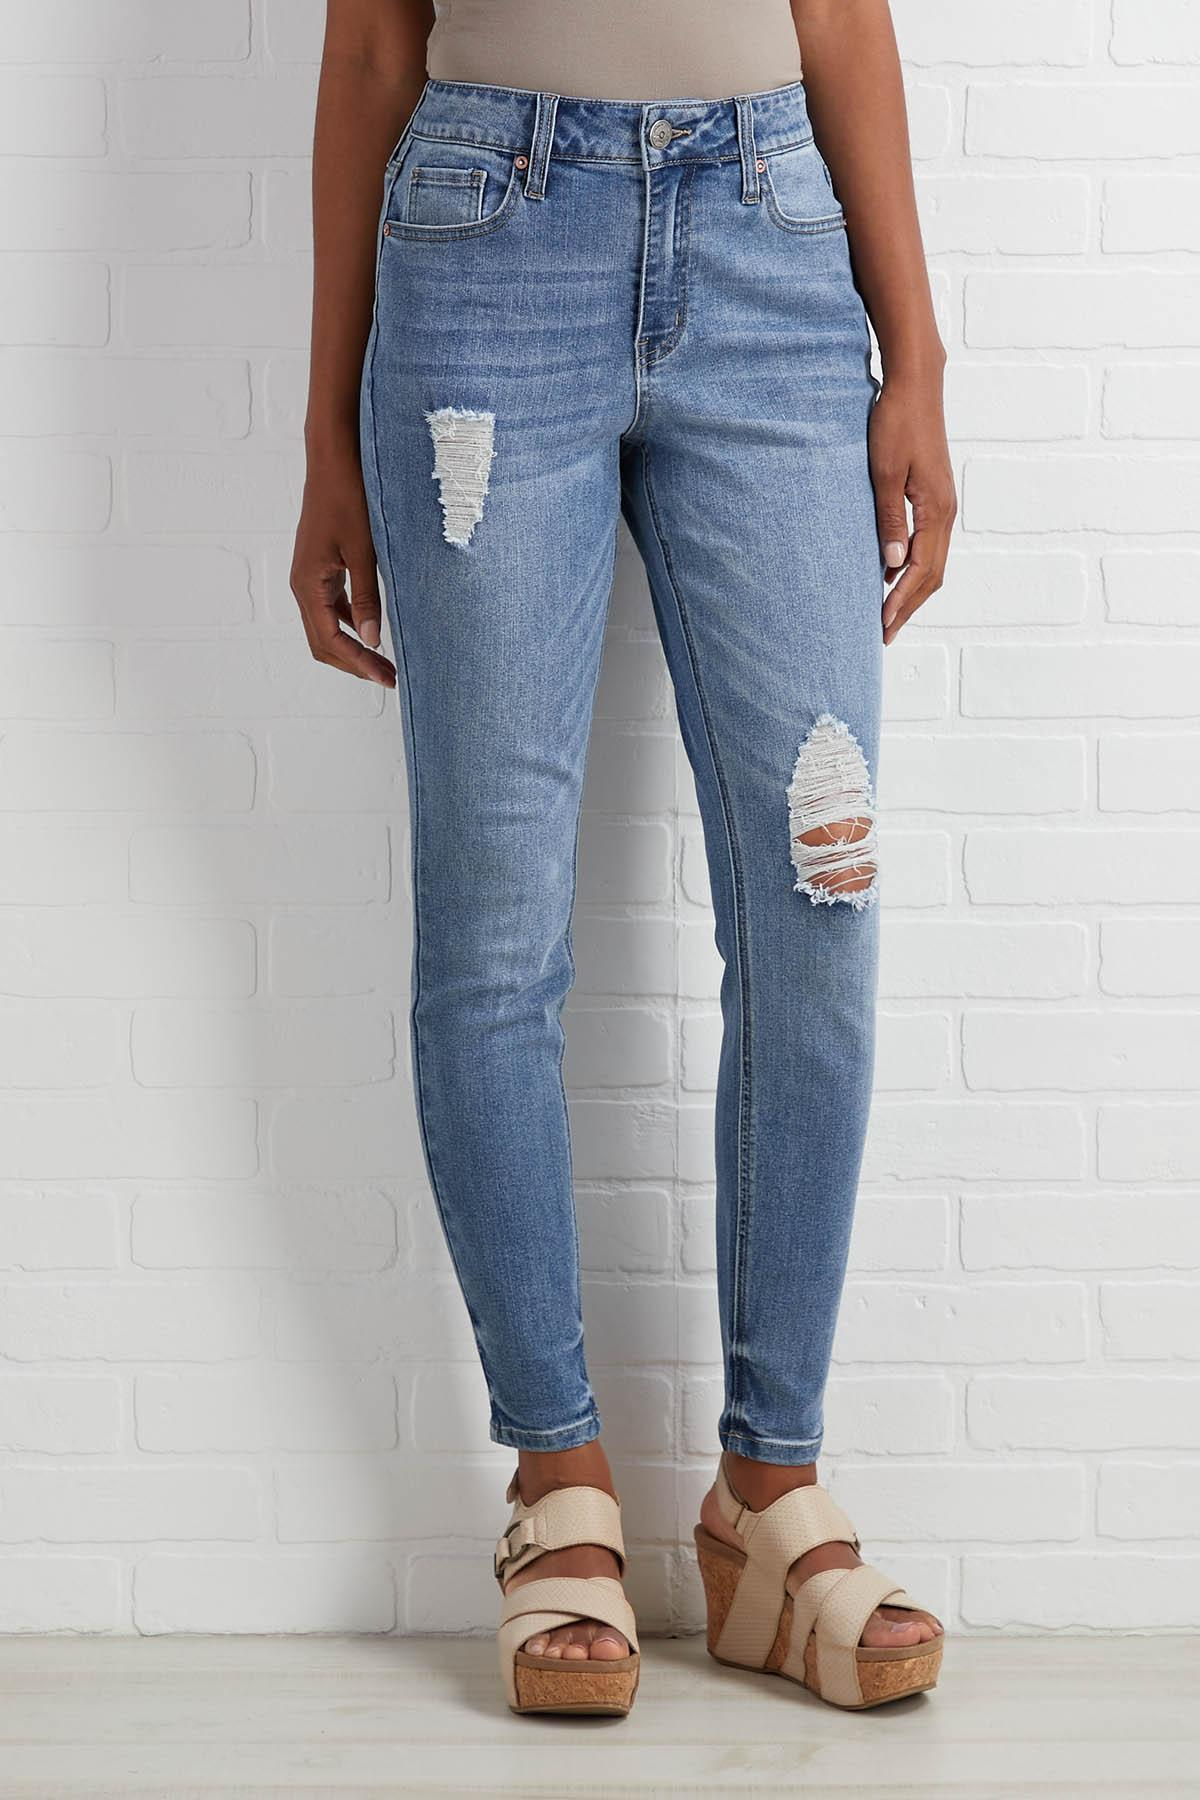 On The Rise Jeans